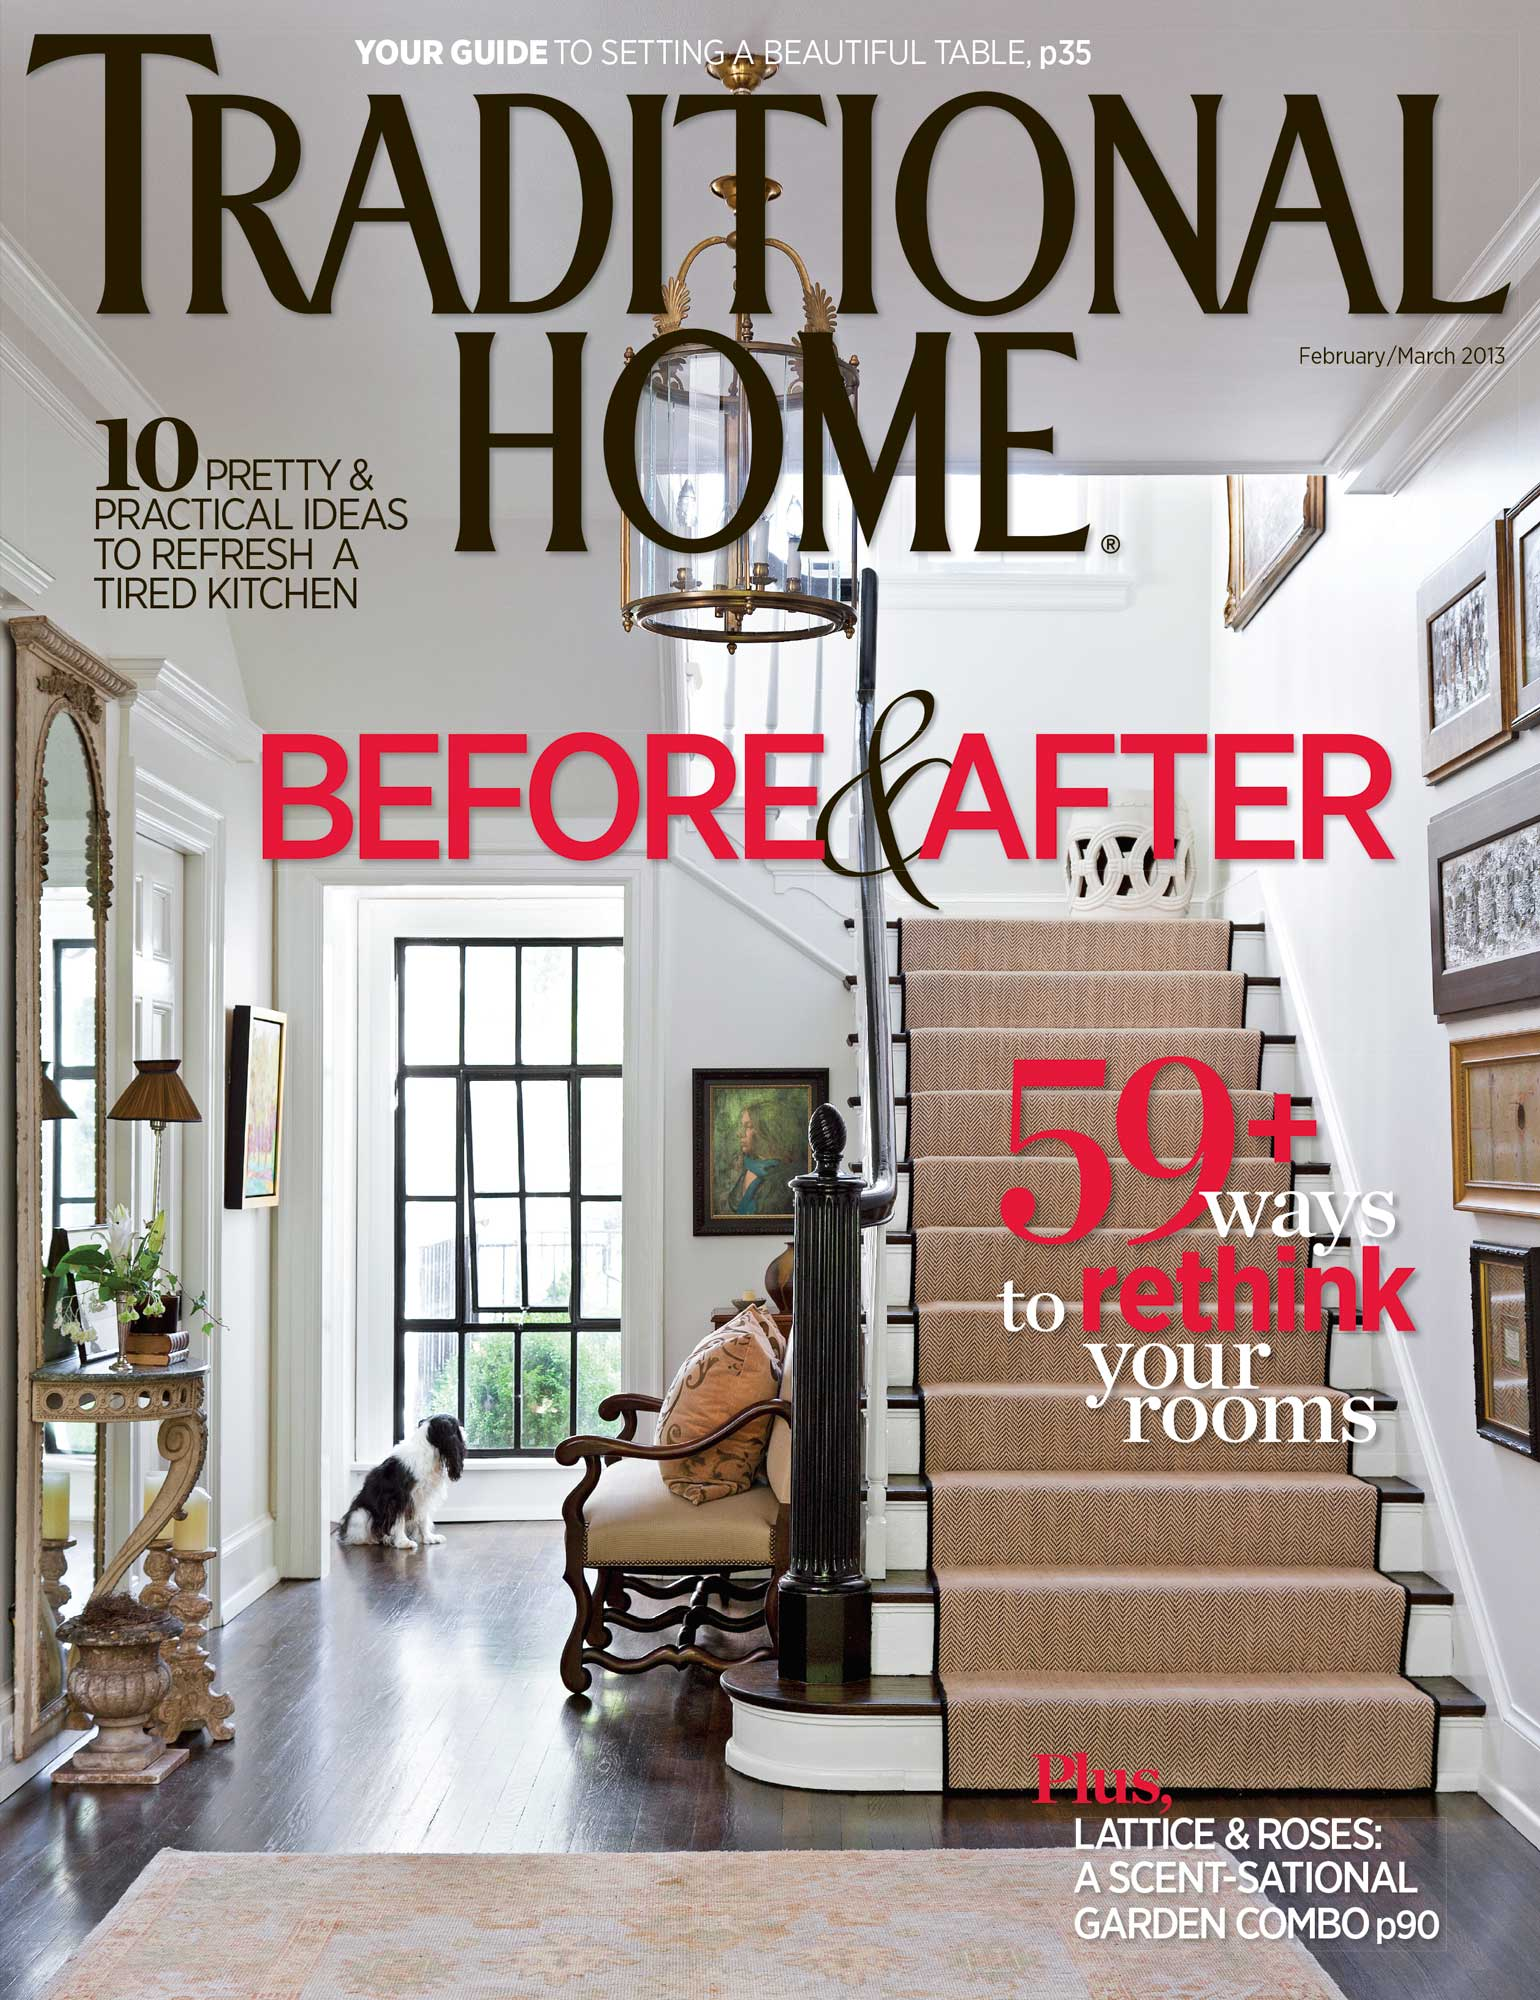 Traditional Home Feb/March 2013